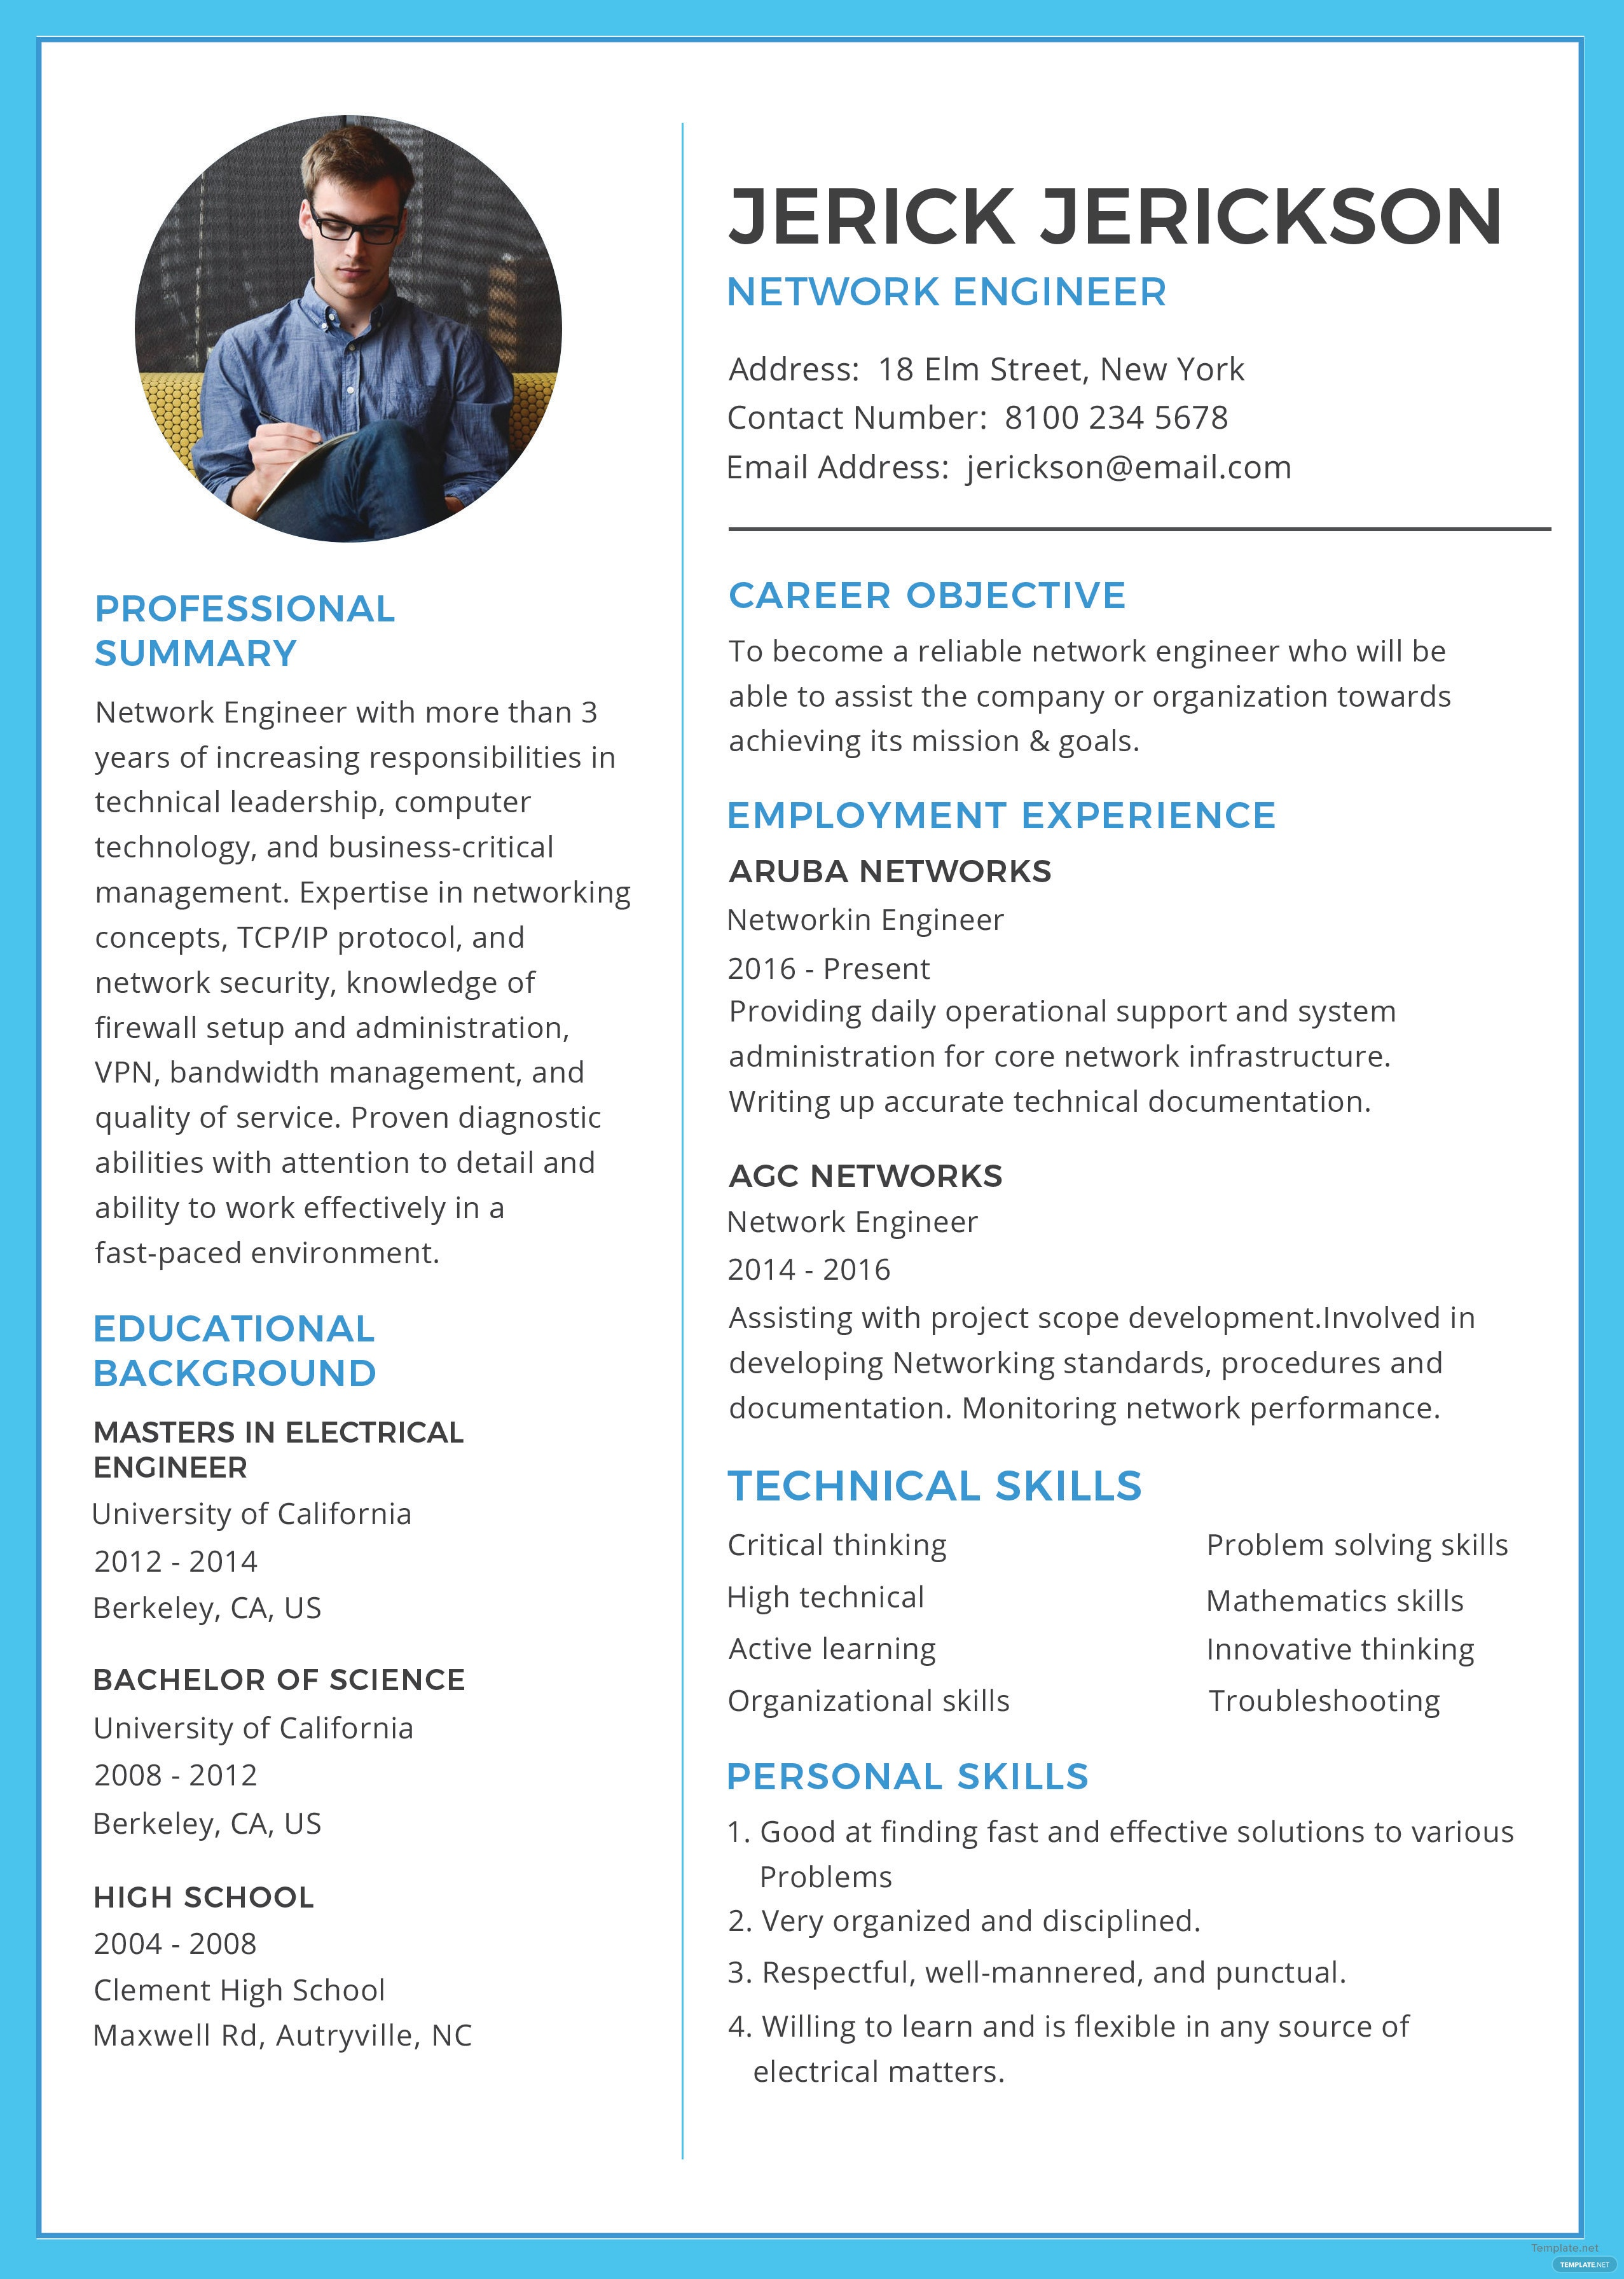 resume Engineer Resume Template free network engineer resume and cv template in adobe photoshop template